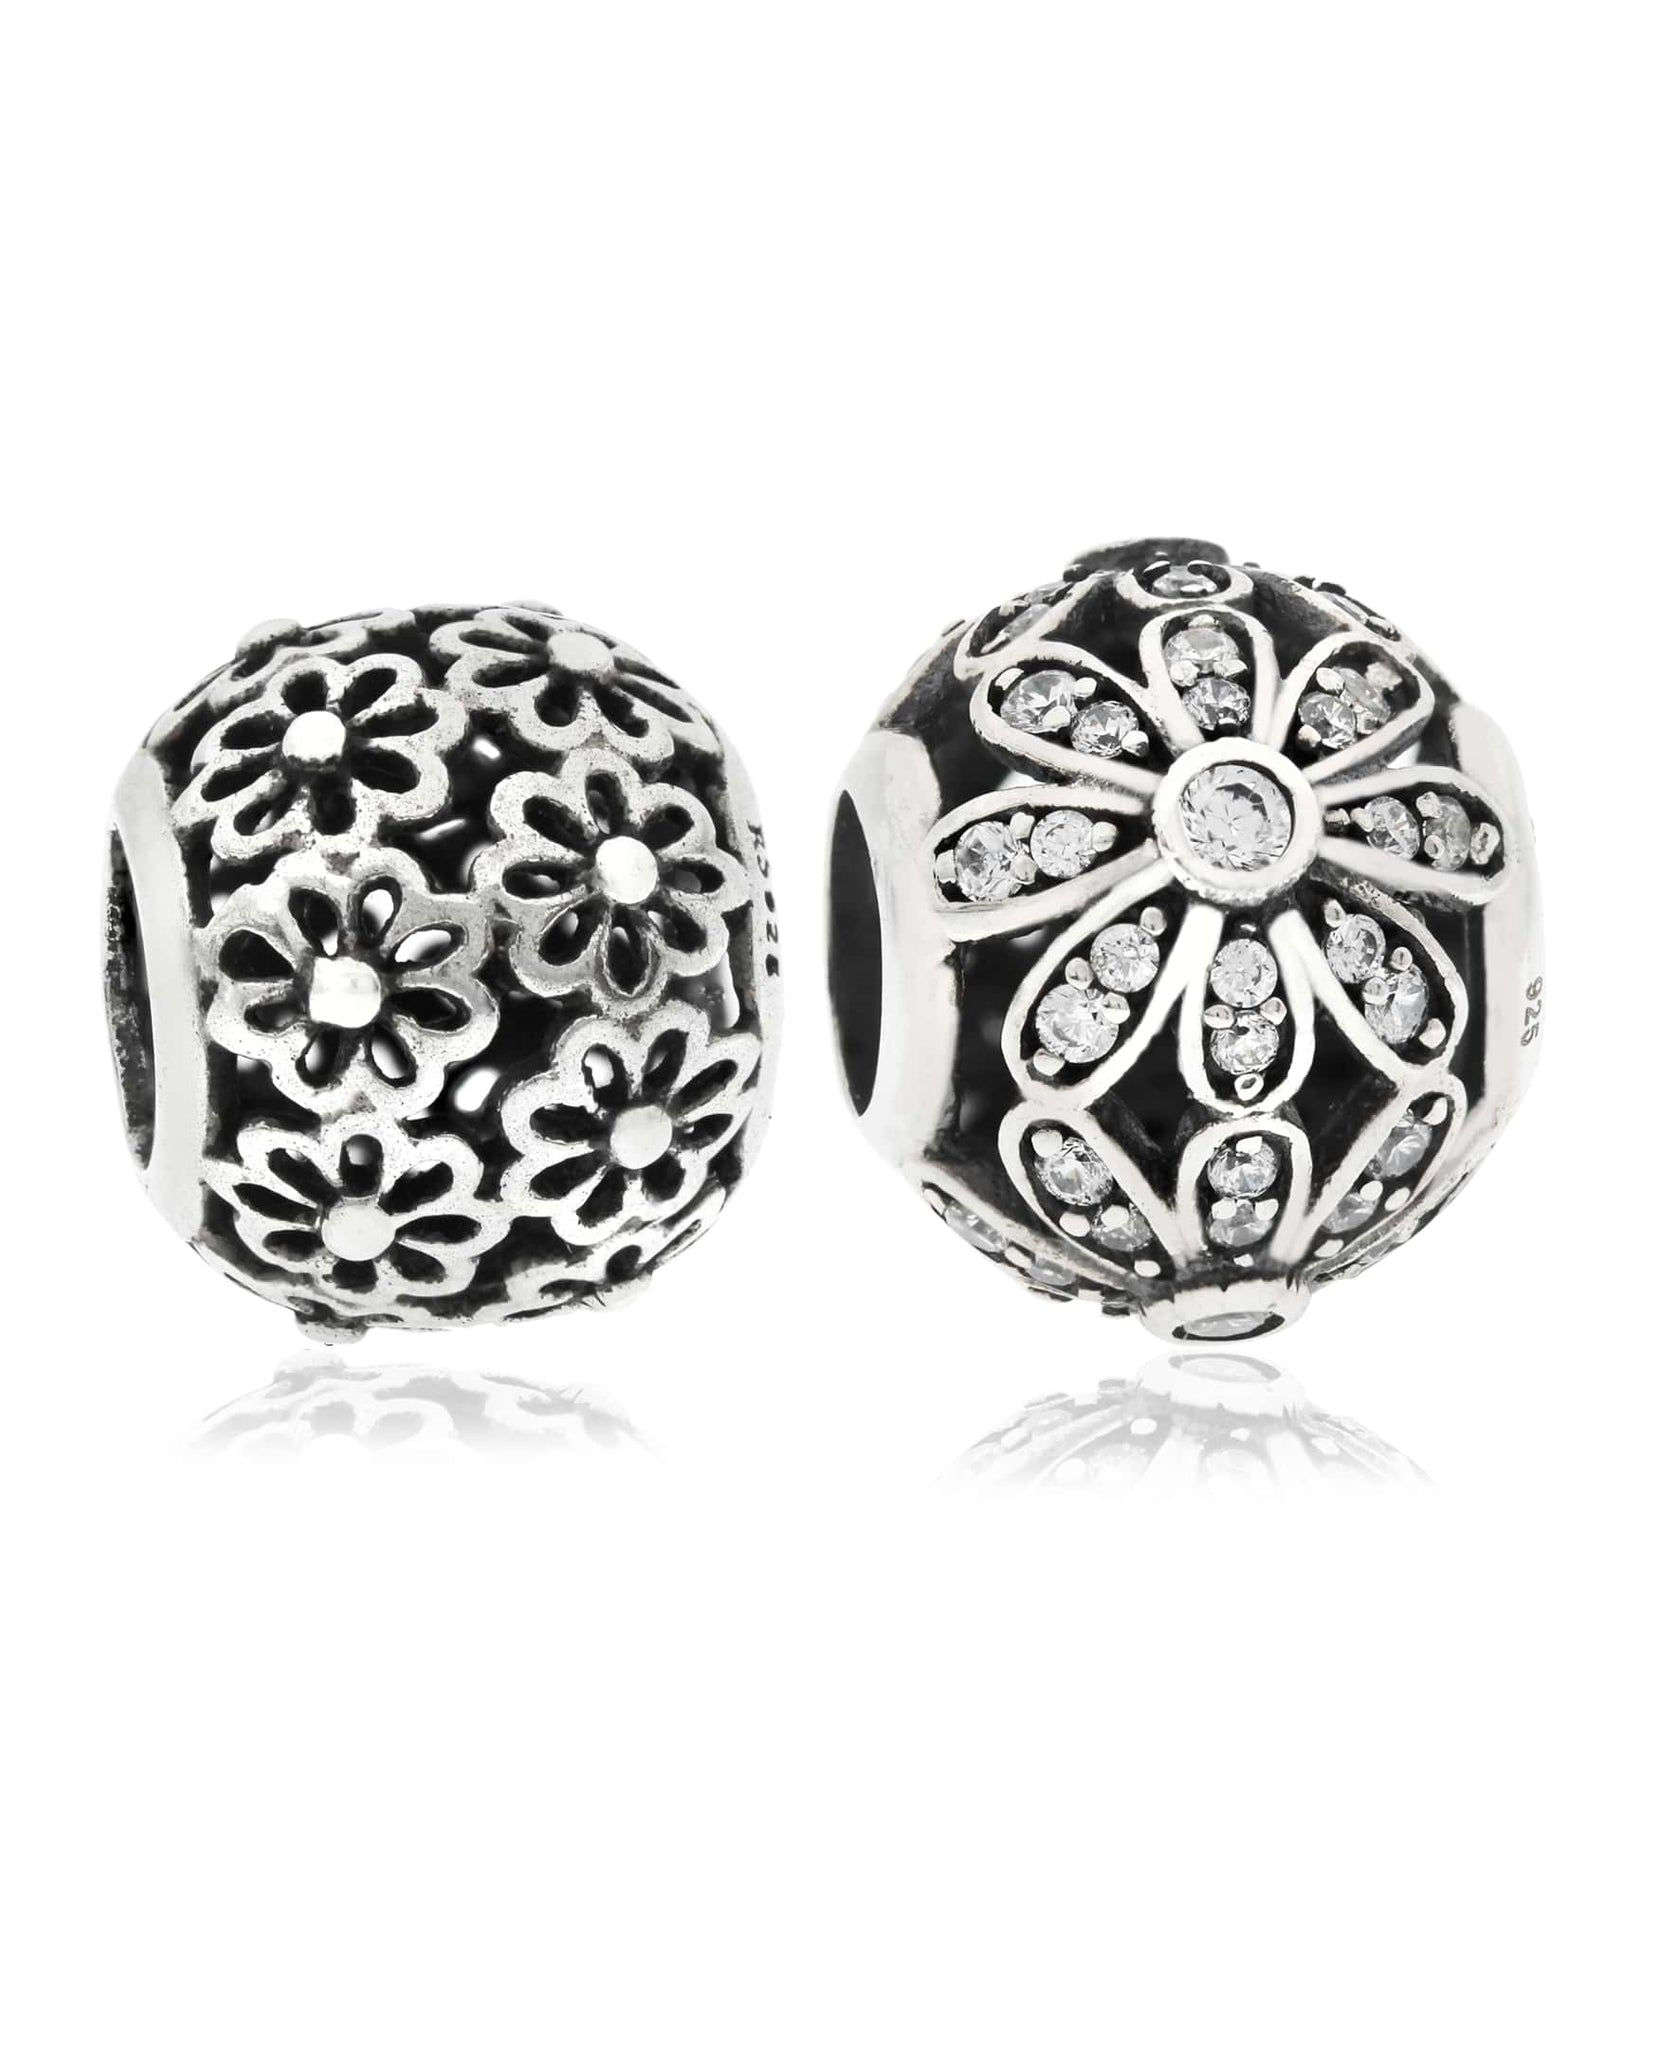 2-Pc. Cubic Zirconia Daisy Bead Charms in Sterling Silver - Rhona Sutton Jewellery